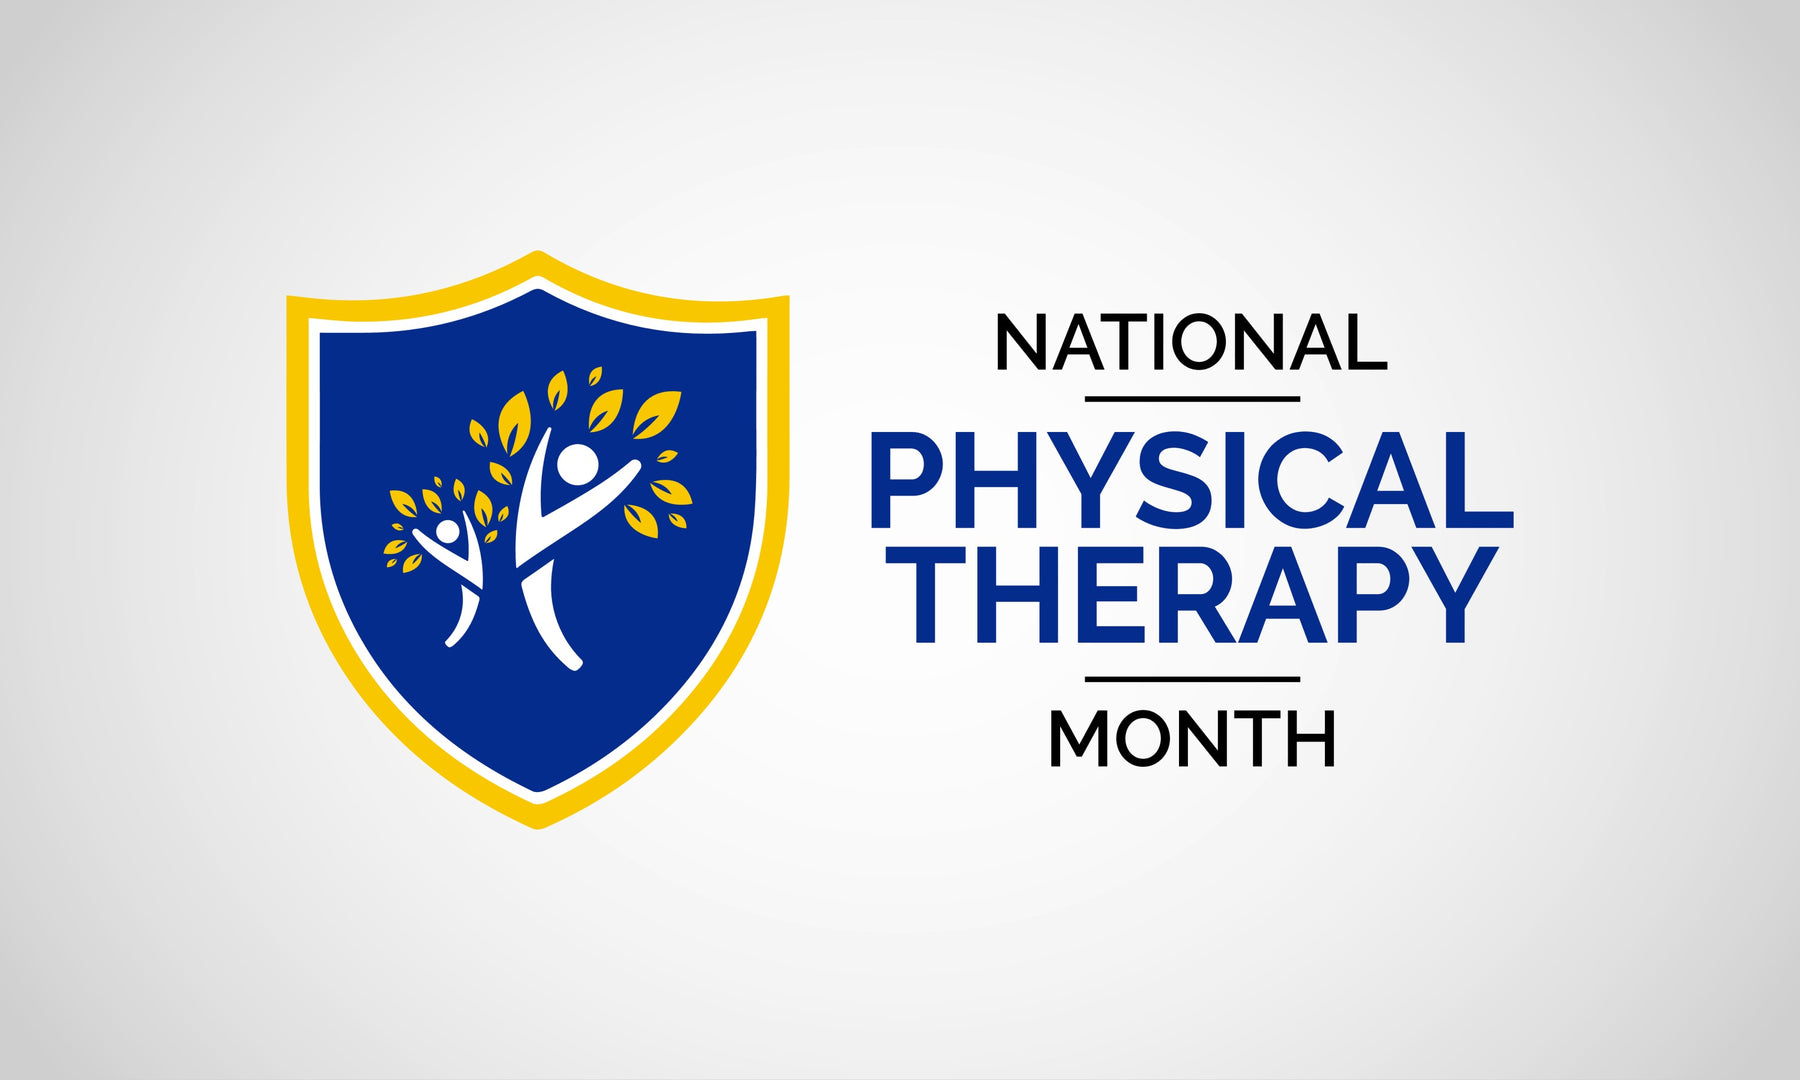 National Physical Therapy Month 2020